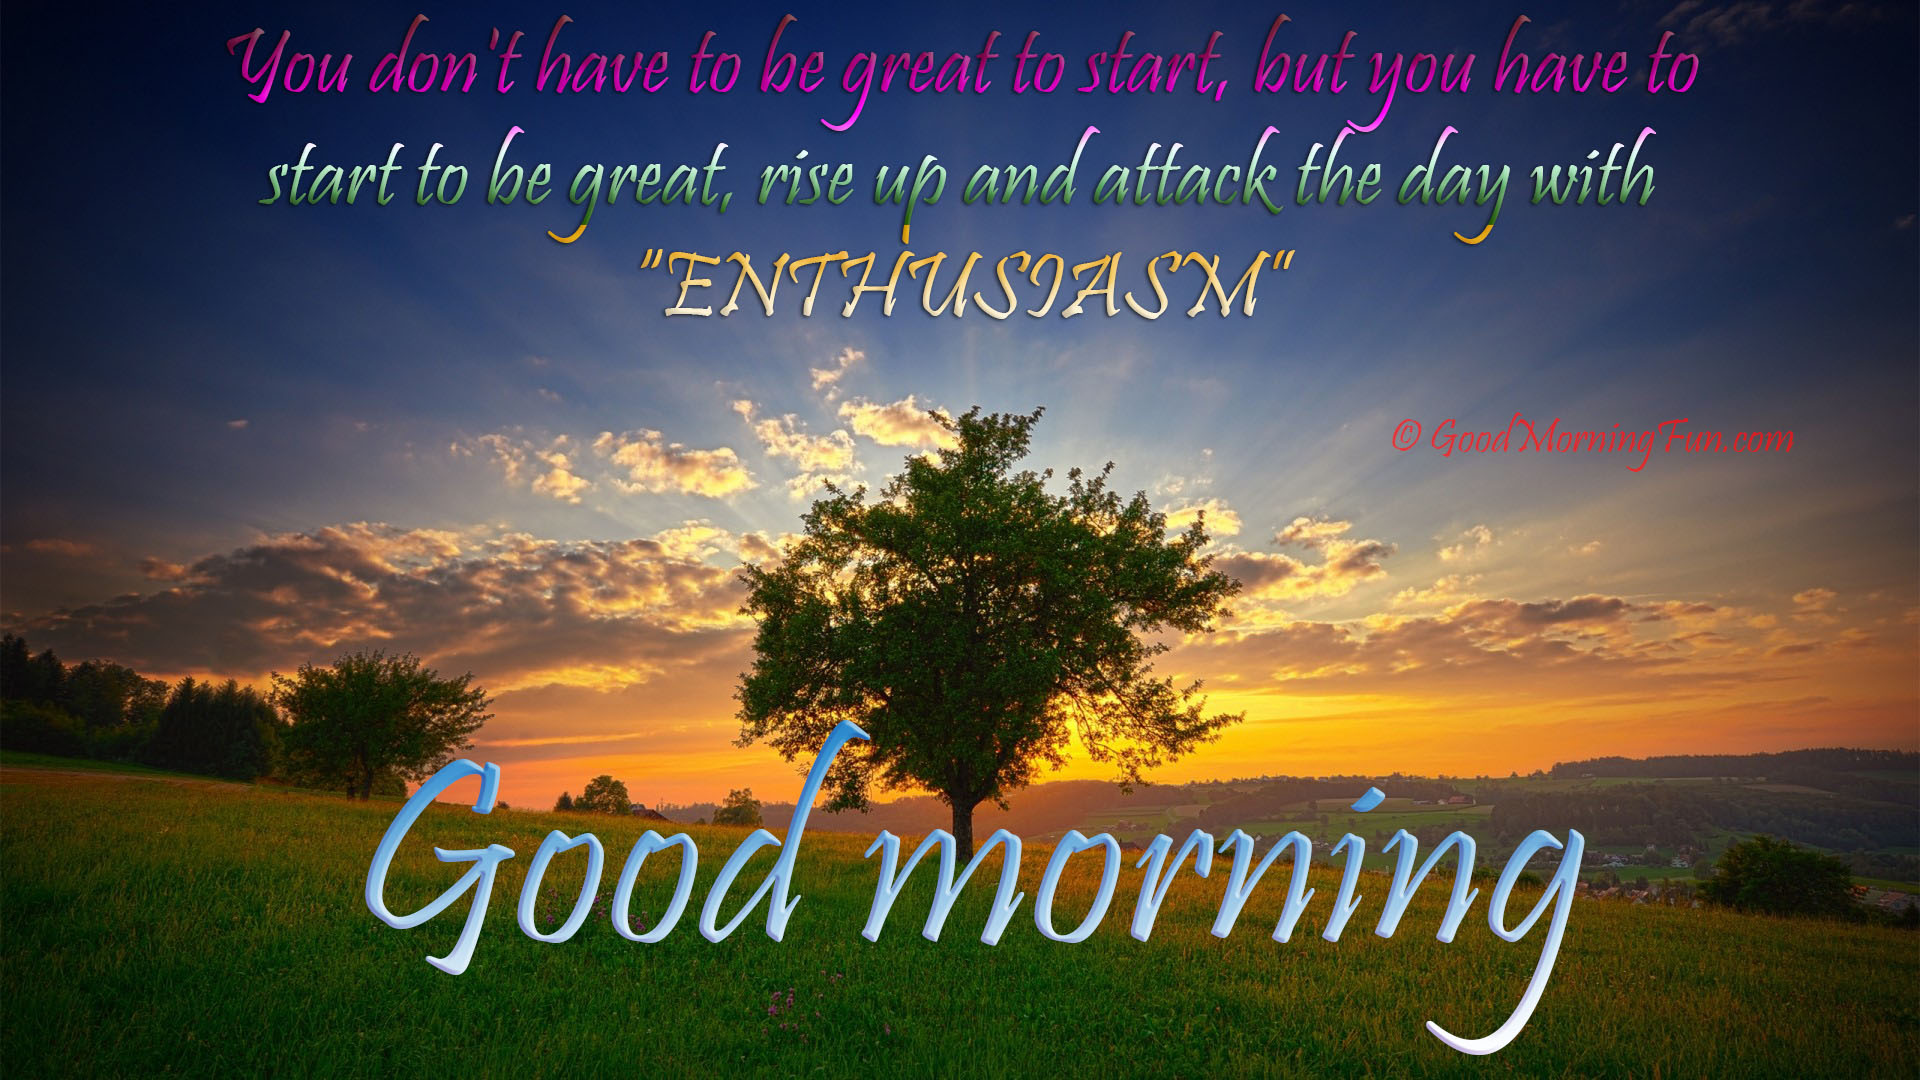 Great Quotes About Friendship Good Morning Quotes For Great Start & Rise Up Enthusiasm  Good